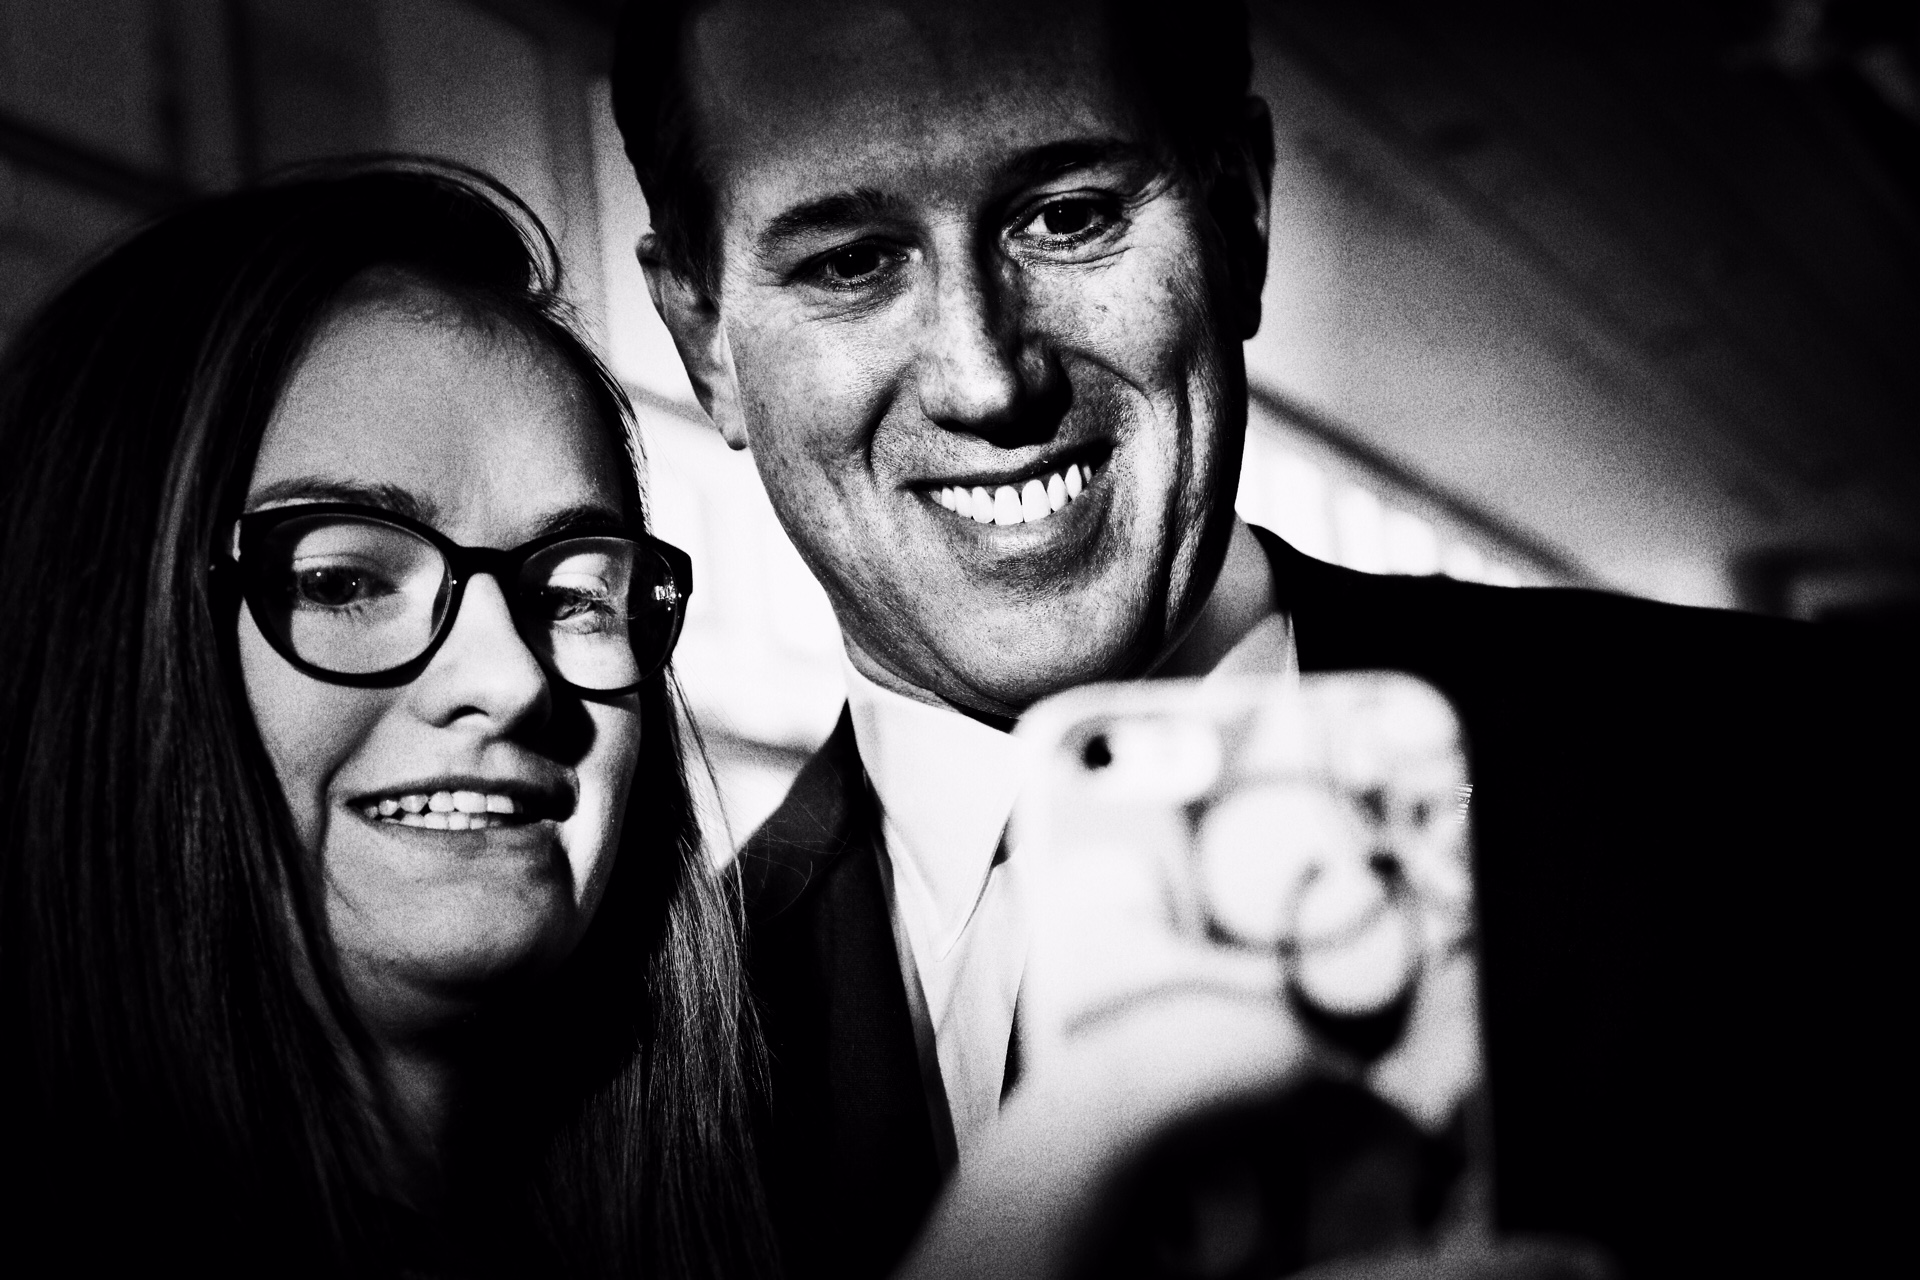 Rick Santorum takes a selfie with a supporter at CPAC in National Harbor, Md. on Feb. 27, 2015.